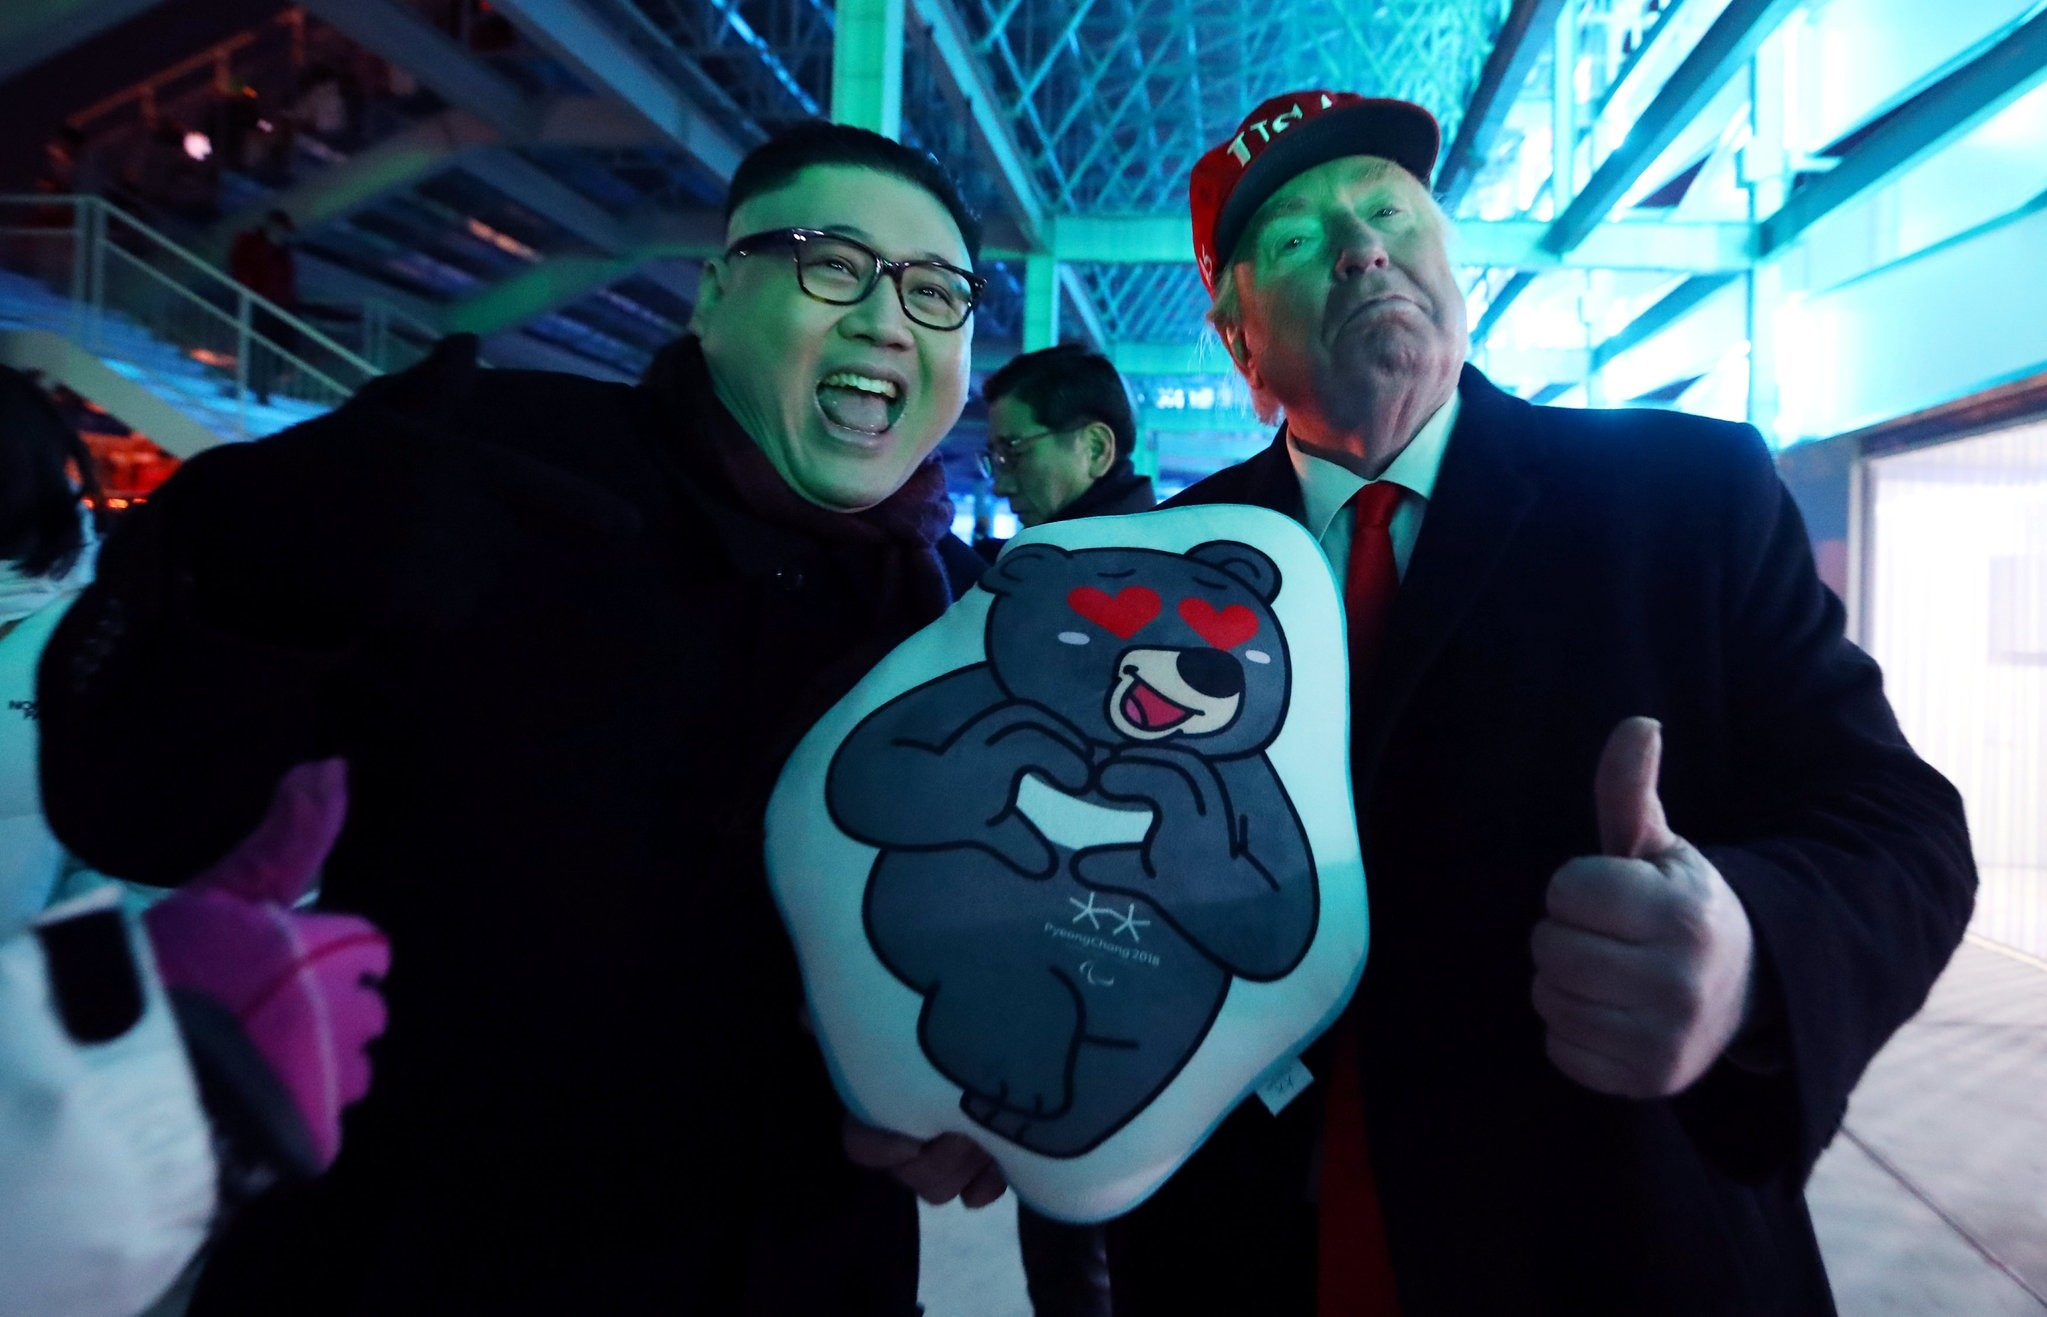 North Korean leader Kim Jong Un and U.S. President Donald Trump impersonators pose at the main stadium of the Pyeongchang Winter Olympic Games, Feb. 5.